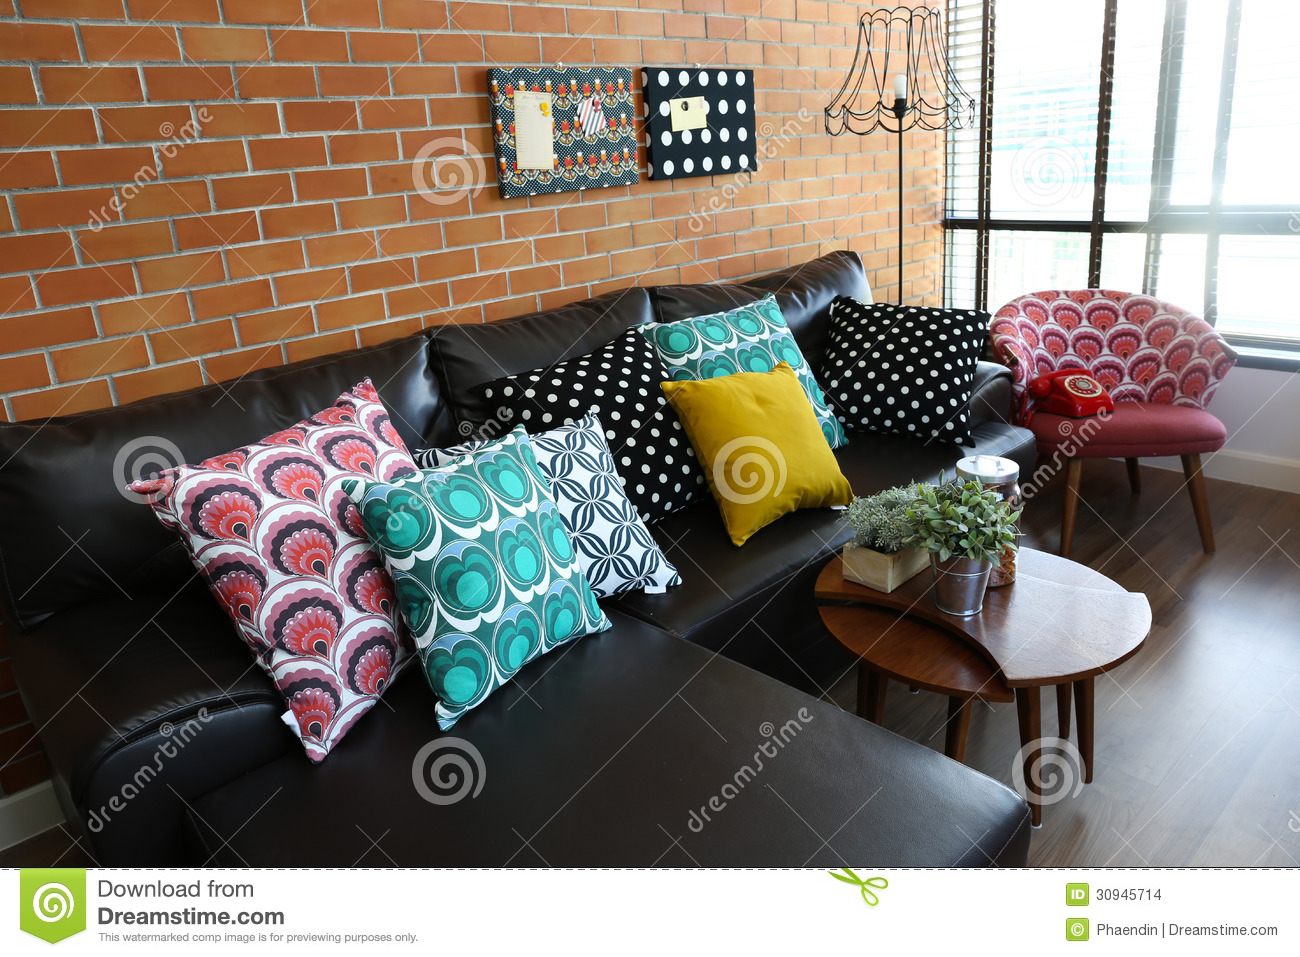 colorful pillows on a sofa with brick wall stock images - image